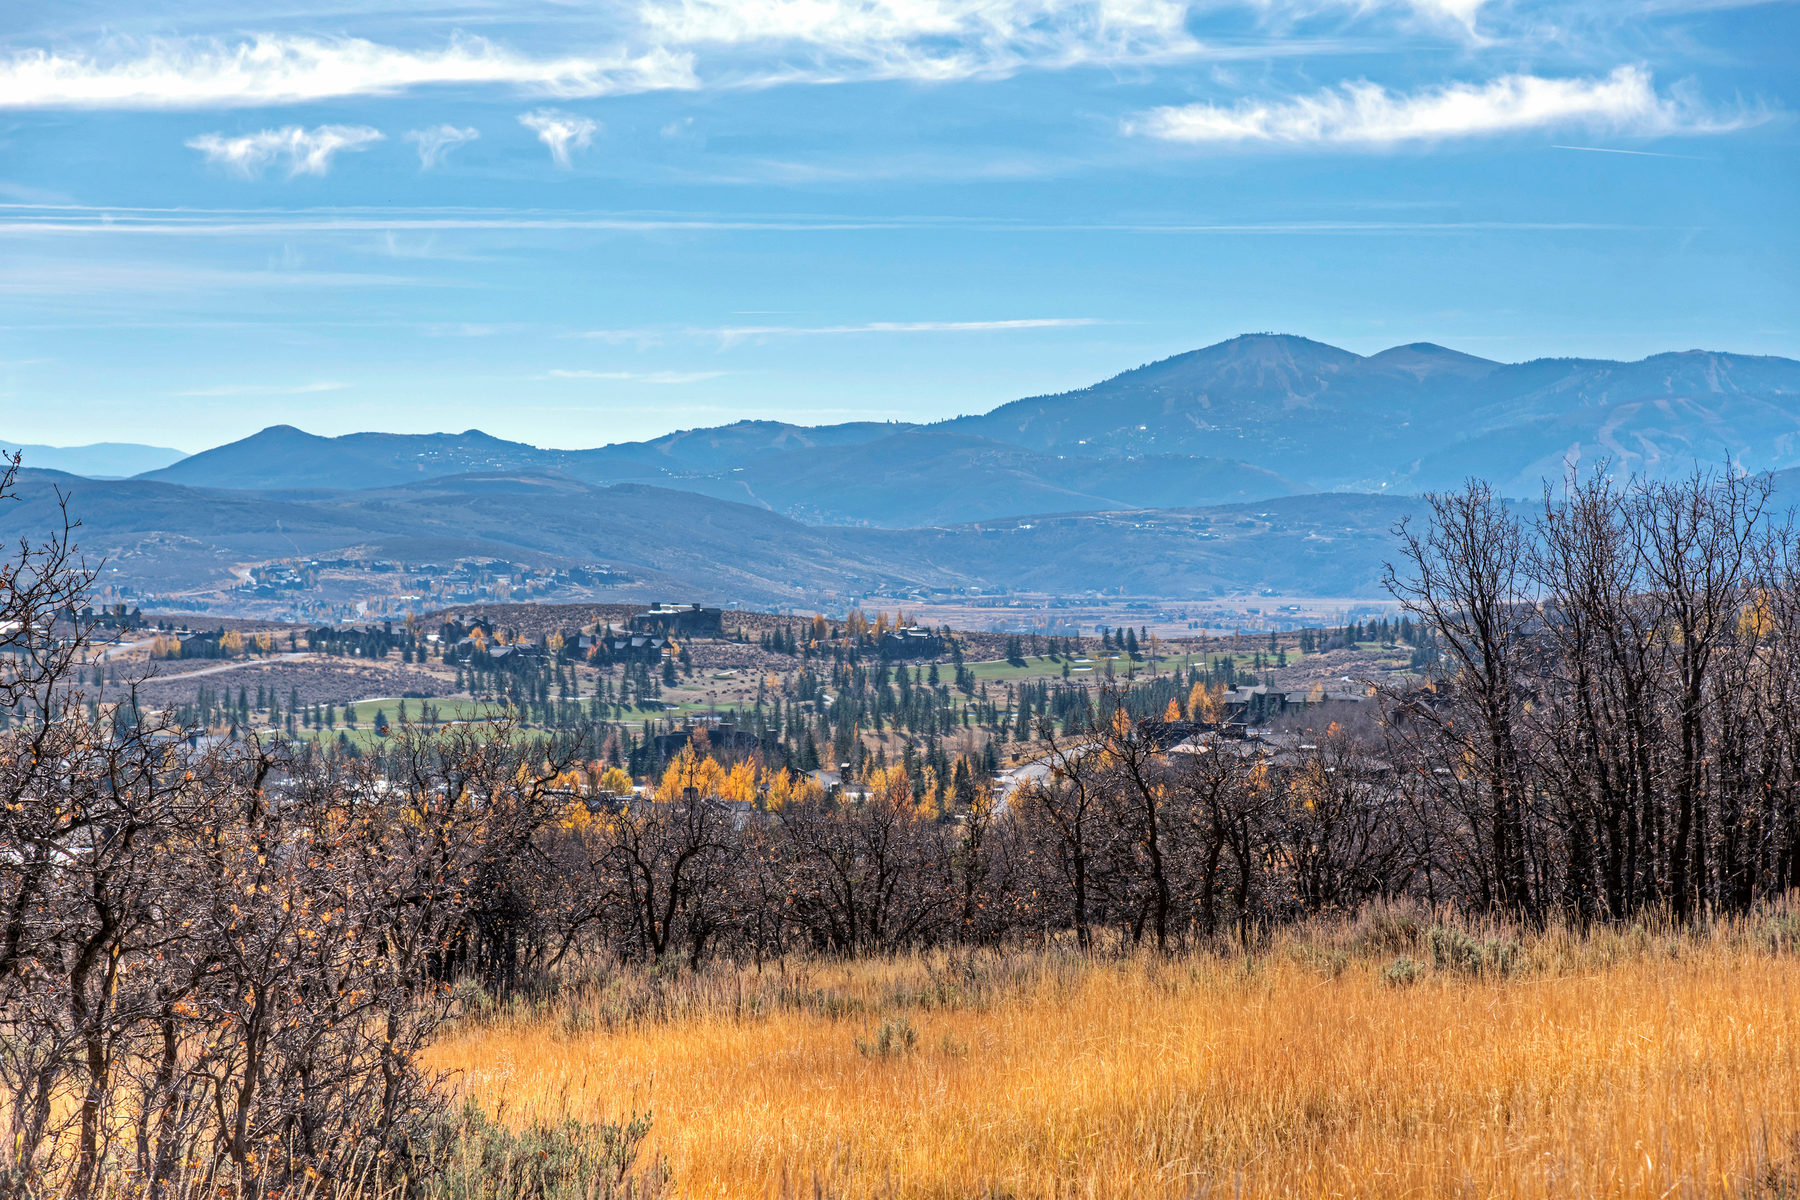 Terreno per Vendita alle ore 11 Acres of Unobstructed Views & Close to Everything 8193 N Red Fox Ct Lot 15 Park City, Utah, 84098 Stati Uniti